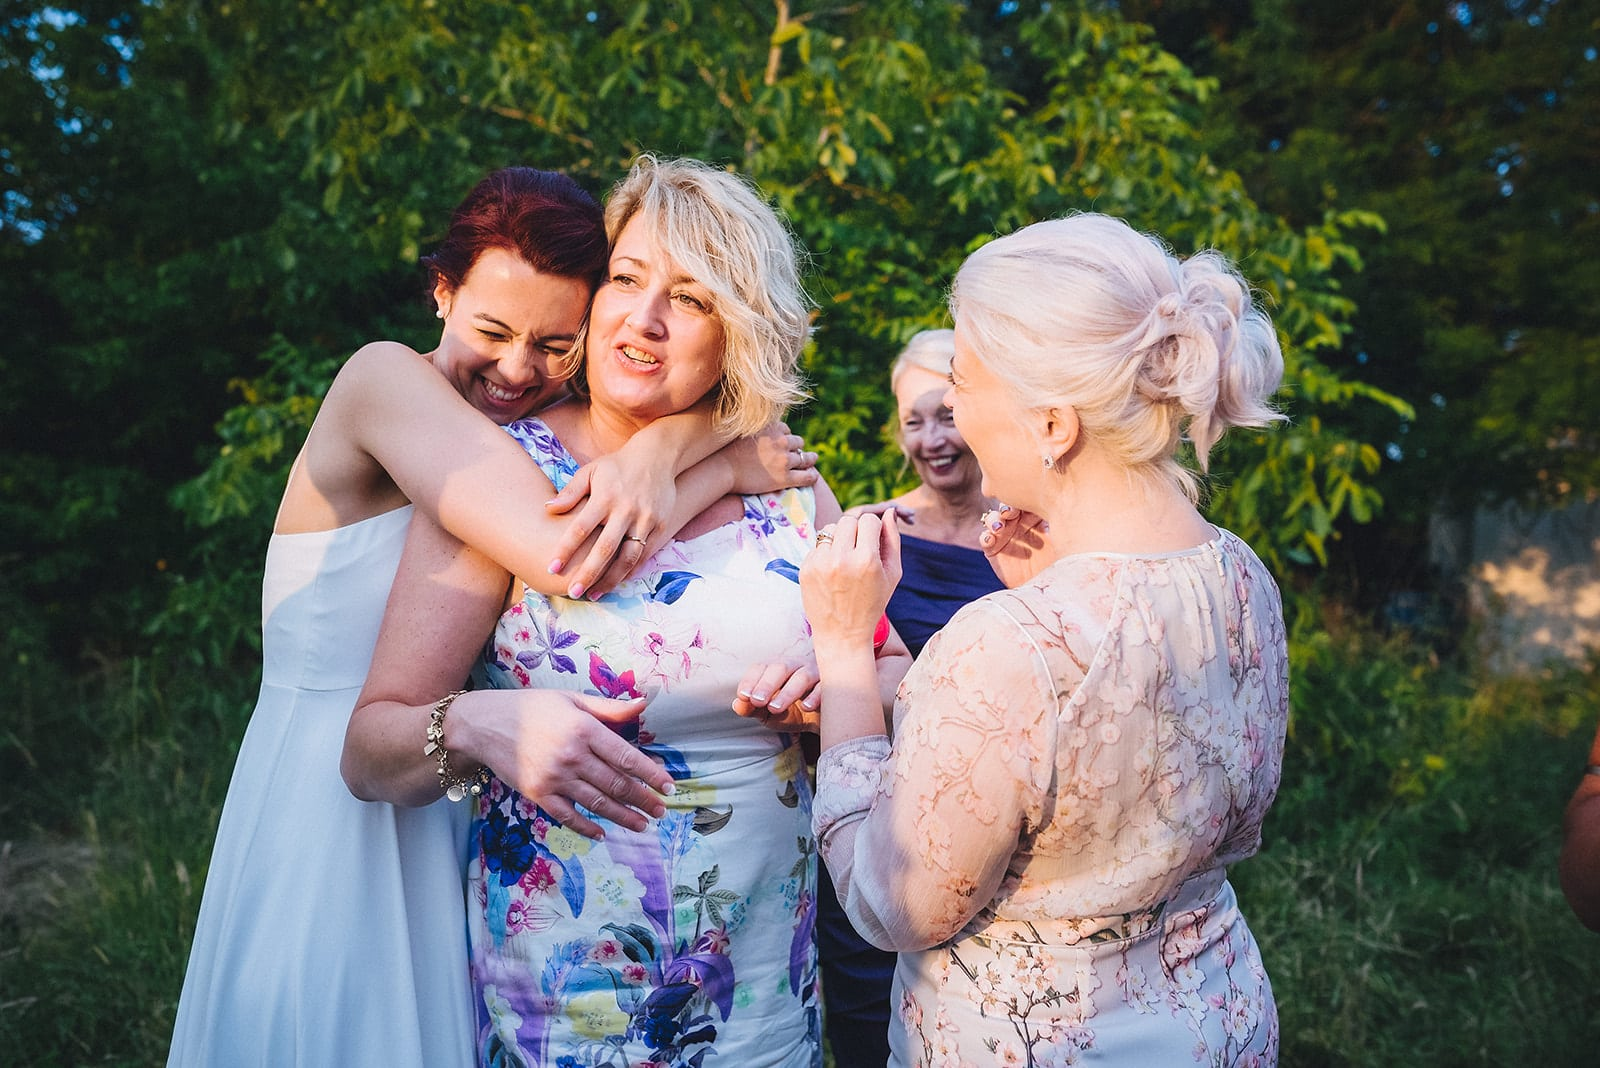 Bride hugs a wedding guest from behind with 2 other wedding guests smiling